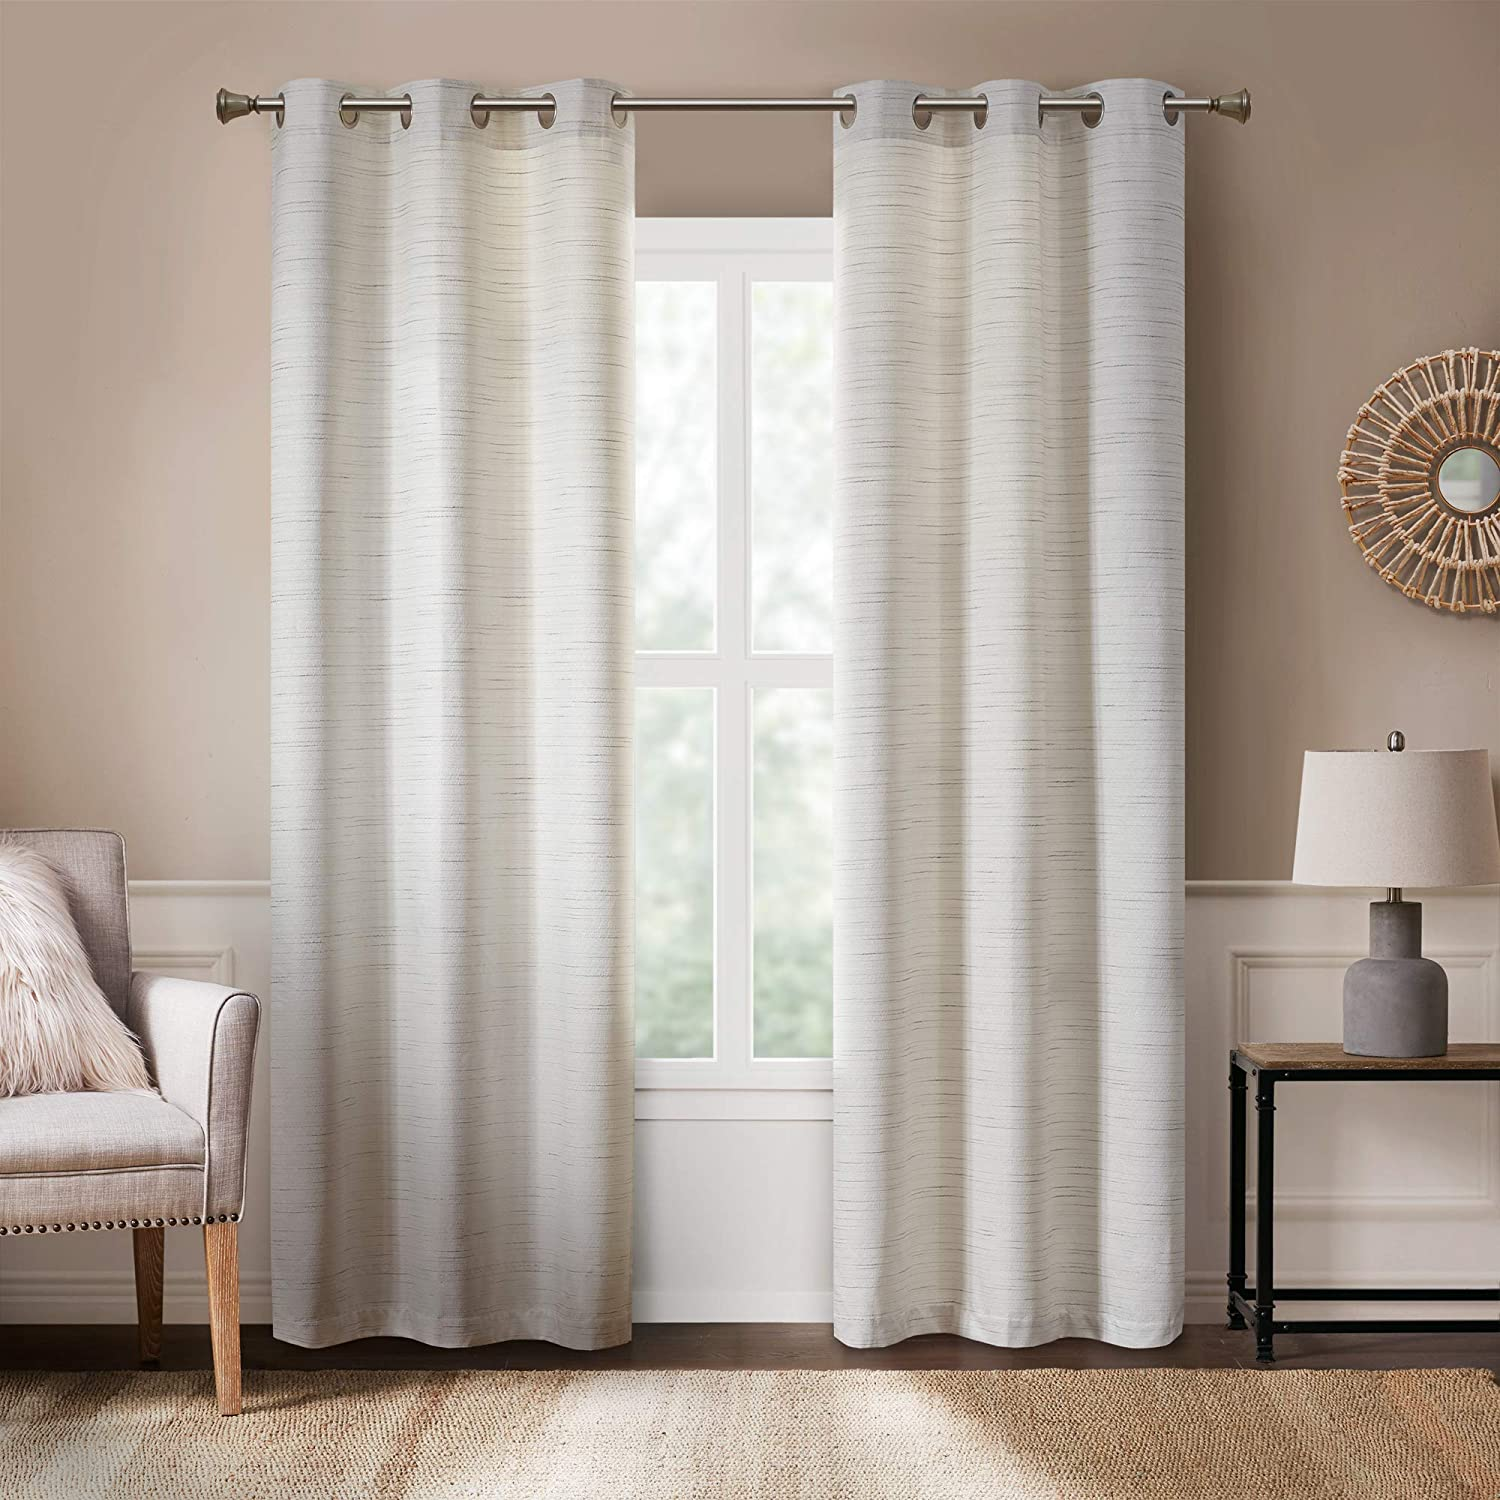 Buy Hyde Lane Modern Farmhouse Curtains for Living Room   Rustic ...